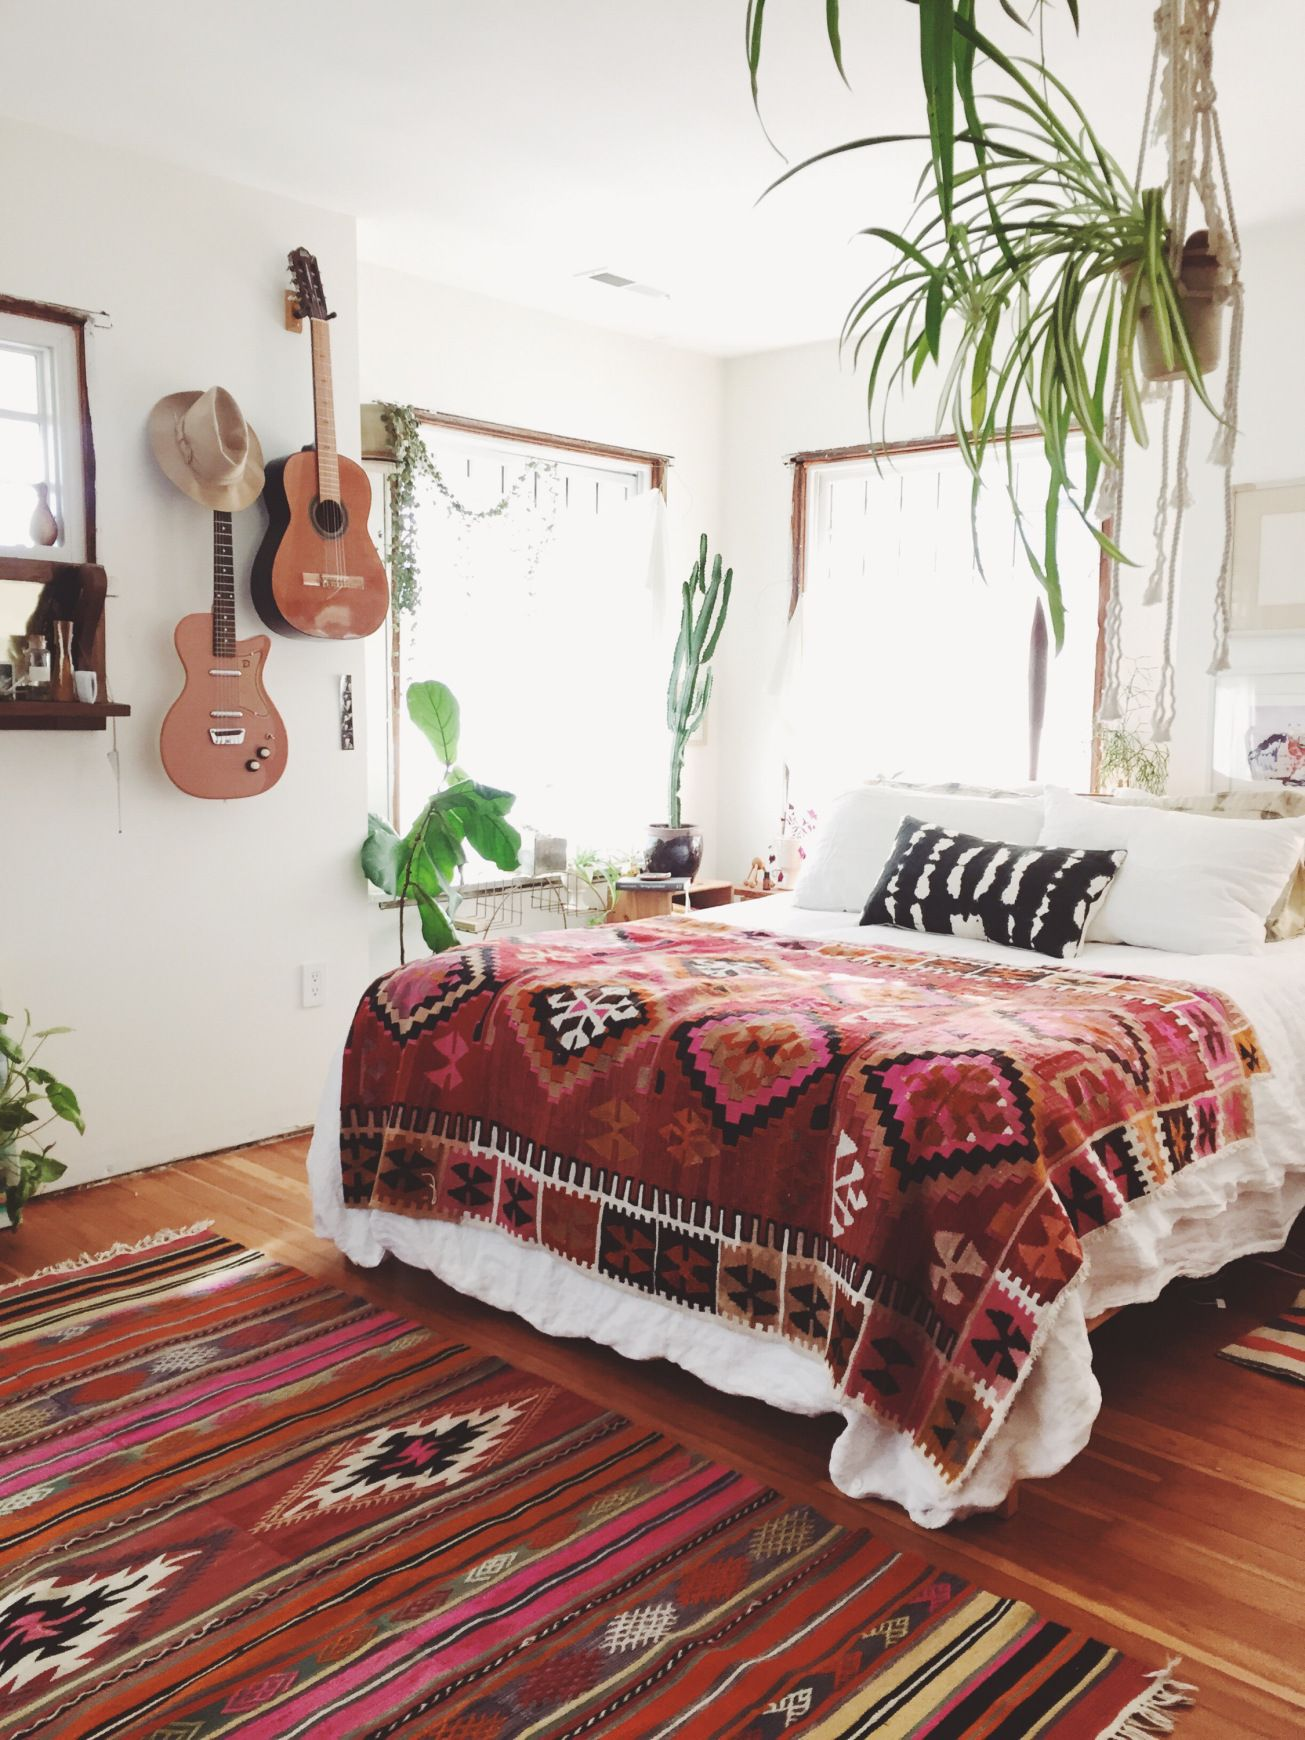 Bohemian Bedroom Design with Ethnical Rug